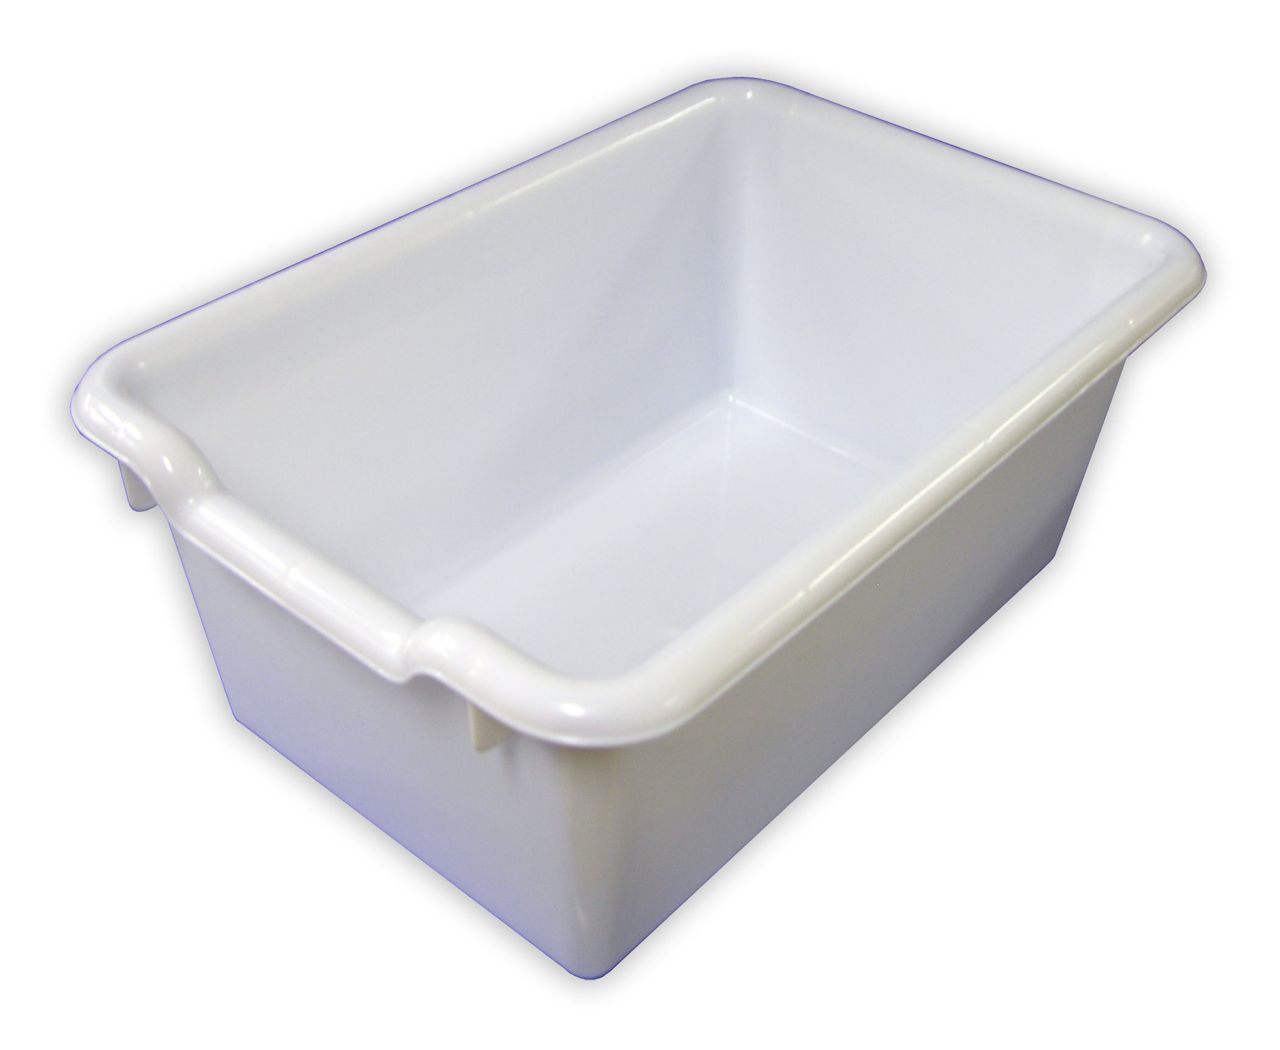 sz on kmartnz plastic tubs product container storage wheels tub